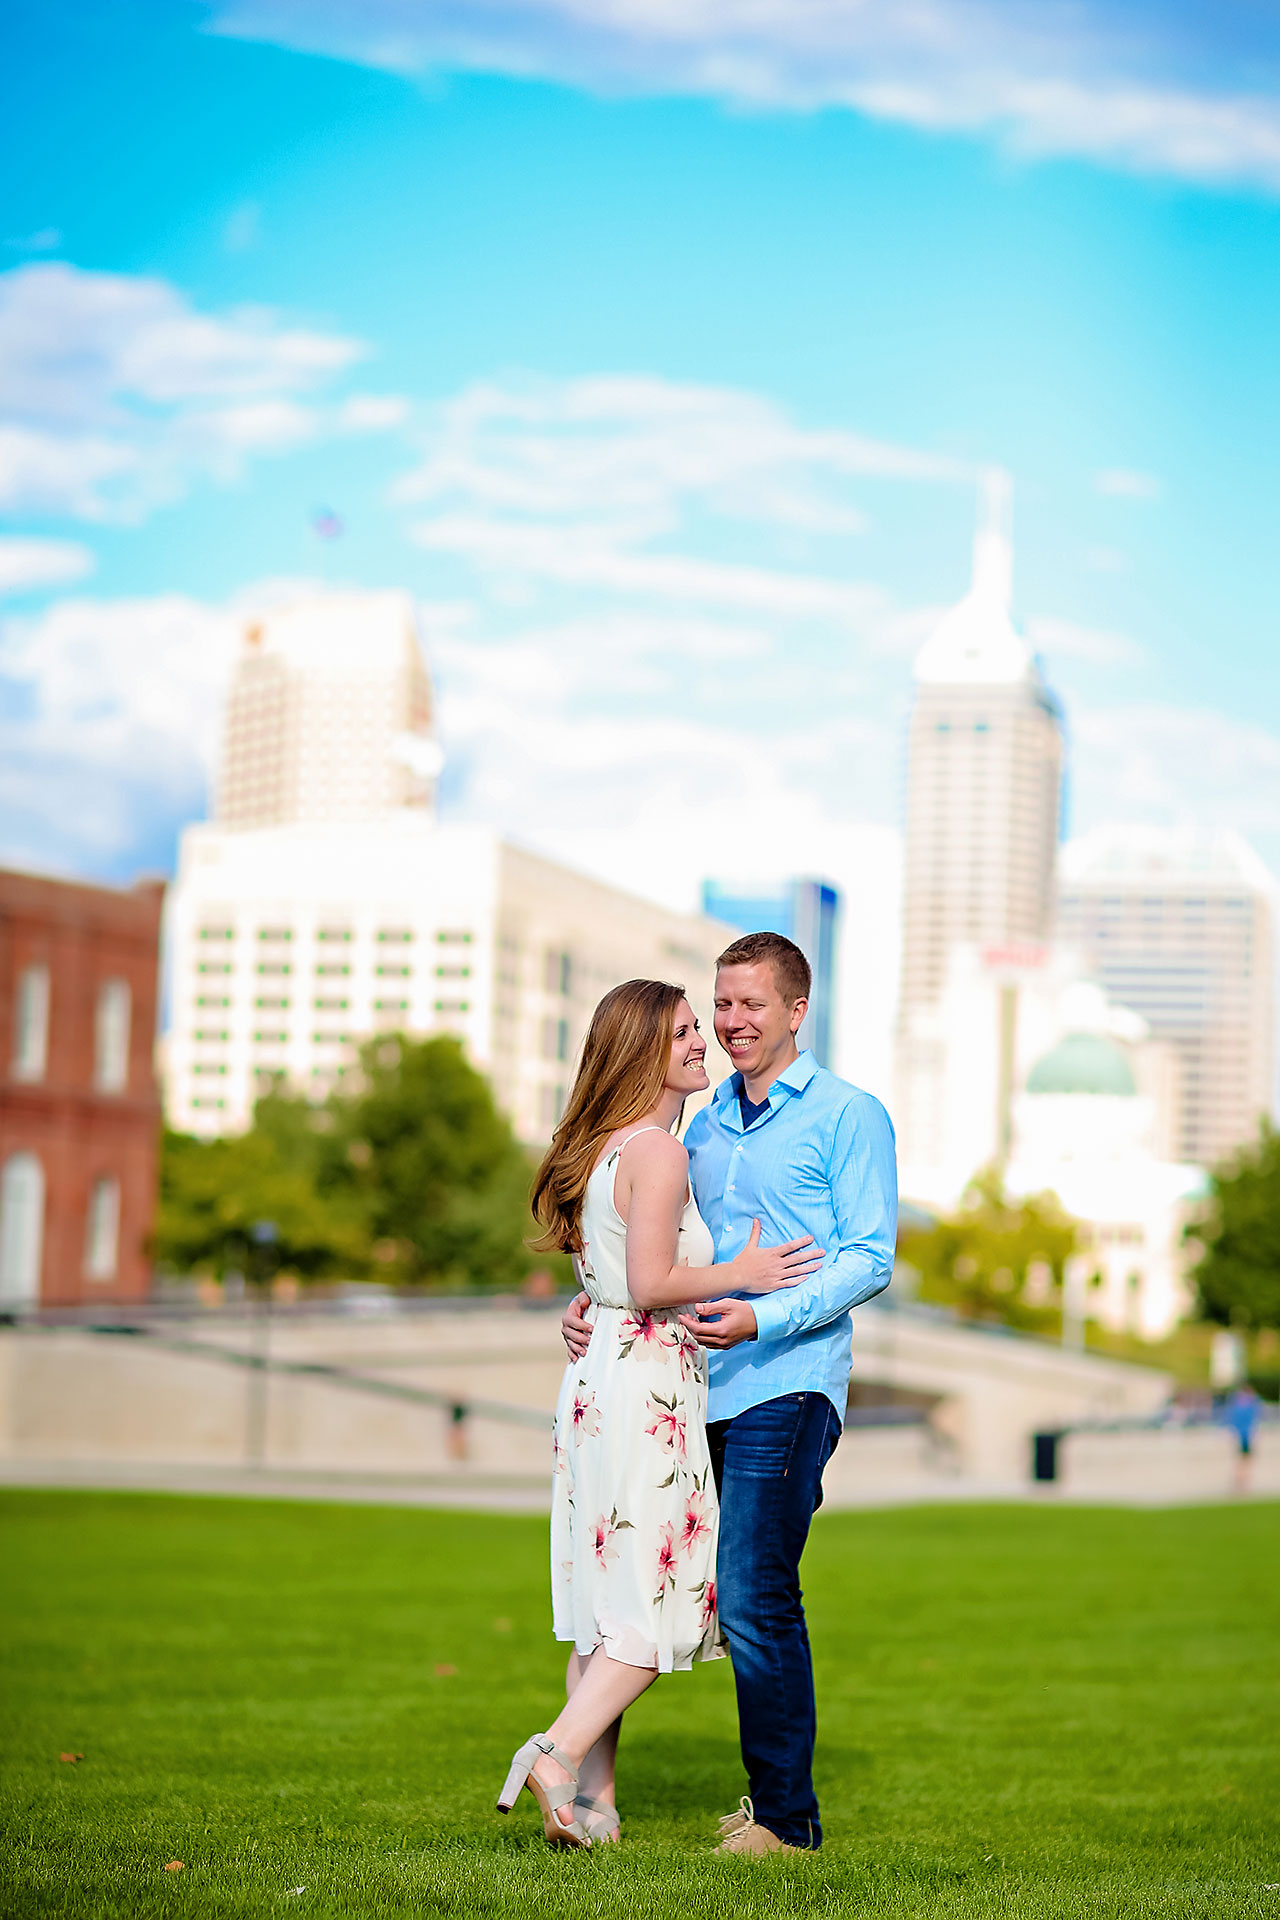 Chelsea Jeff Downtown Indy Engagement Session 149